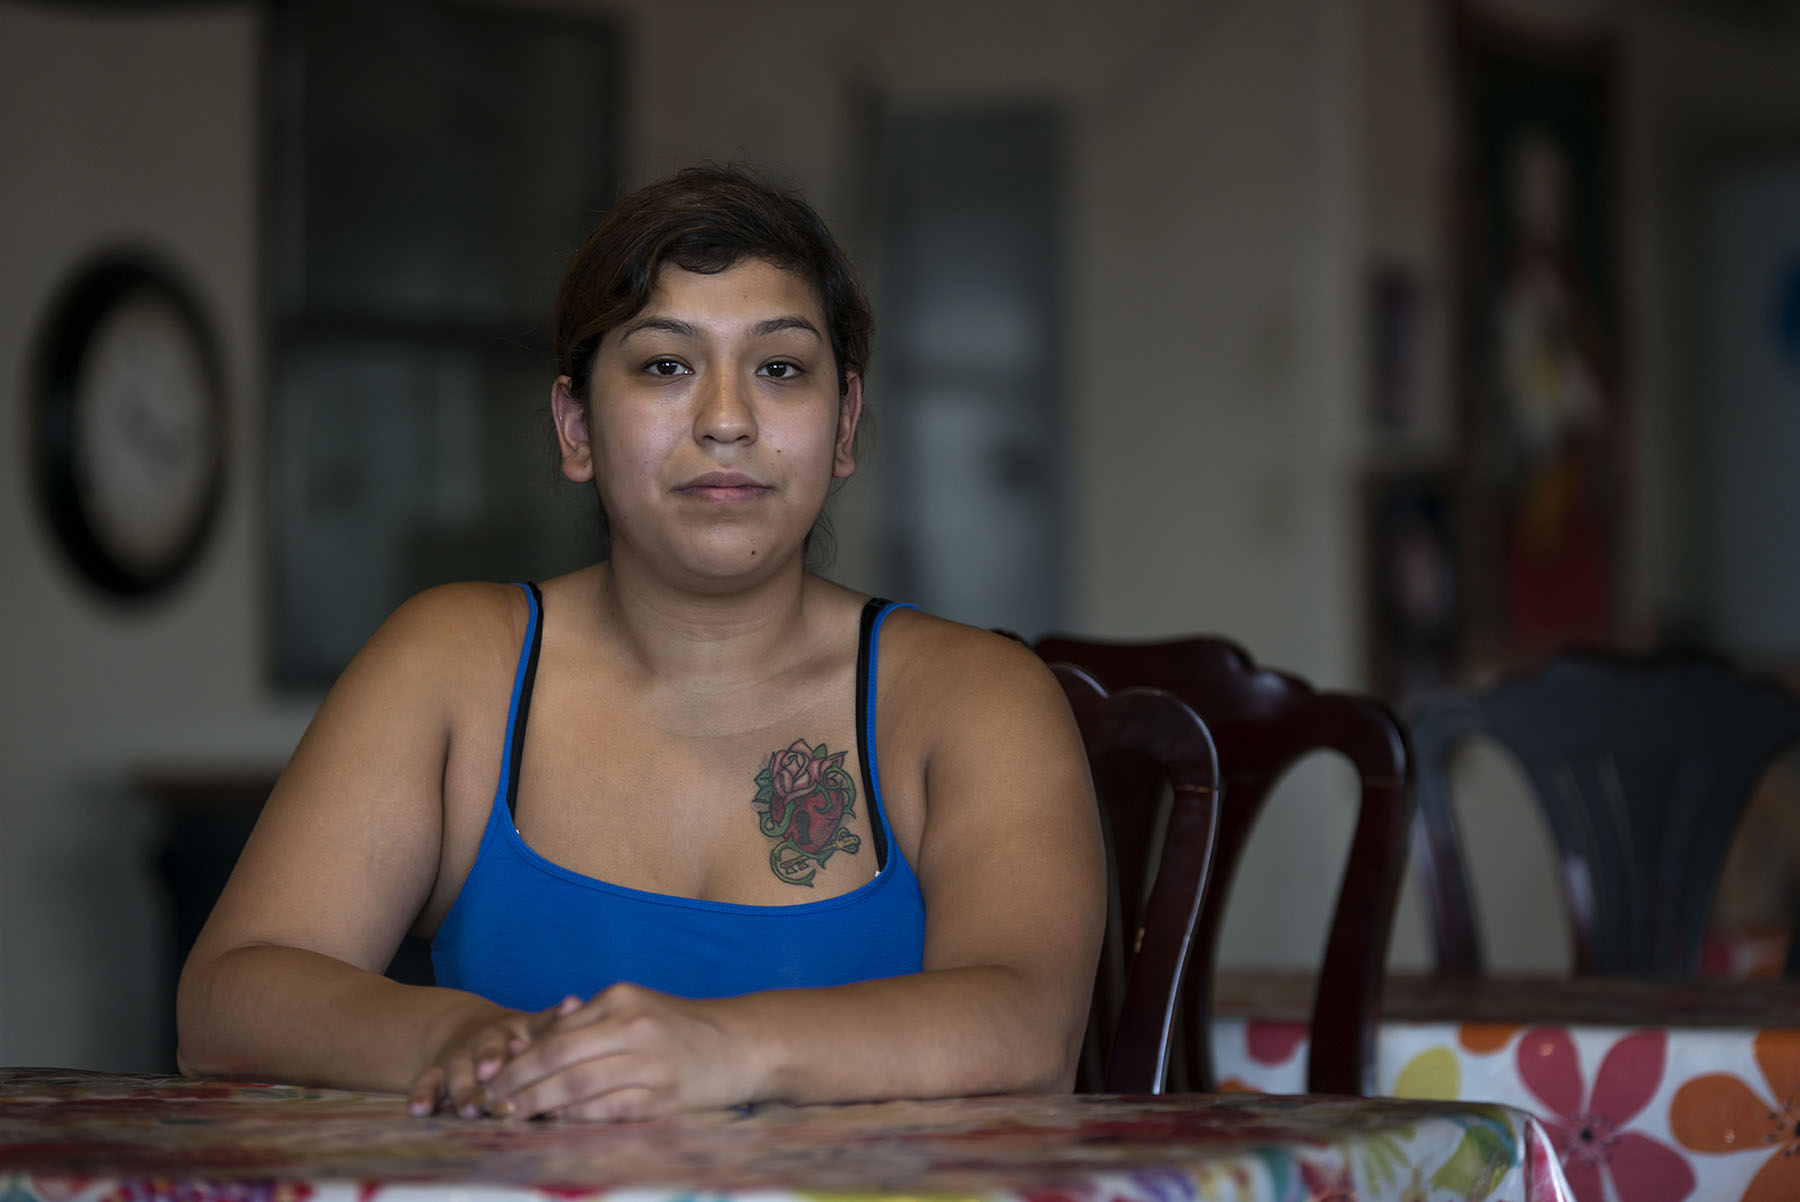 Alejandra Campos, 23, a native of Somerton, Arizona, has never registered to vote. Campos does not believe in the political system. She says politicians only make promises. (Photo by Roman Knertser, audio by Pam Ortega/News21)